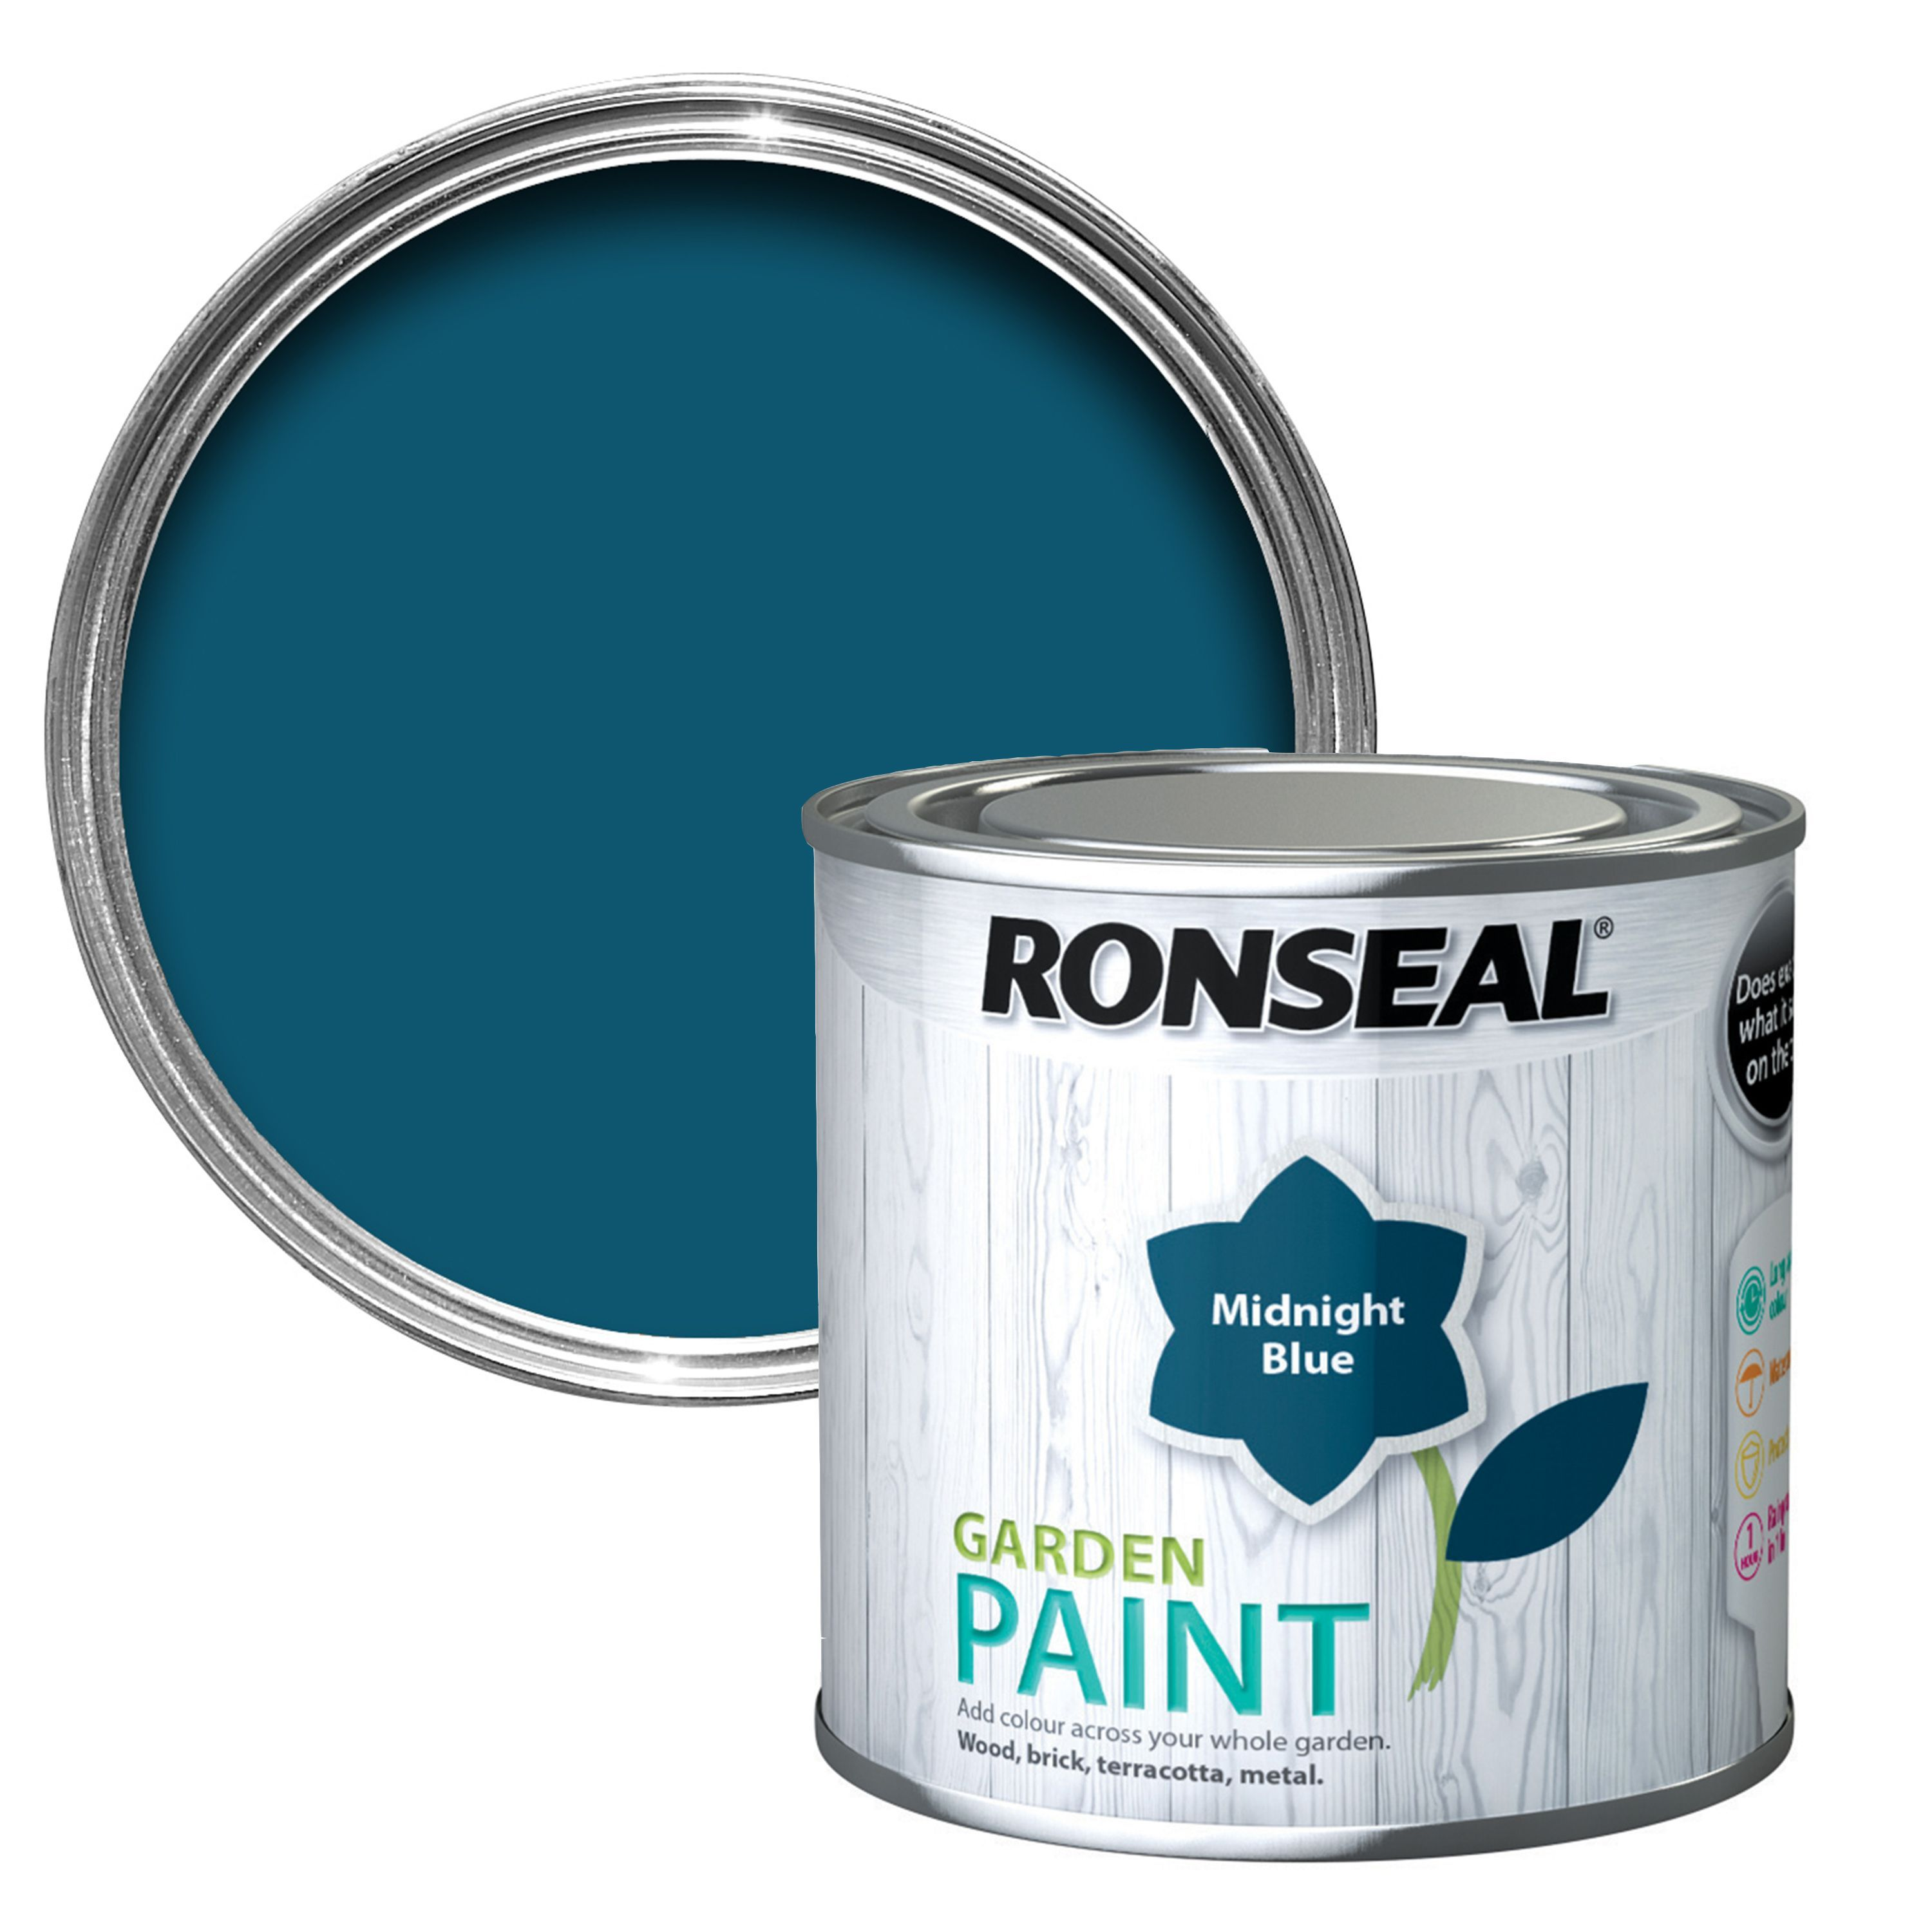 Ronseal chalky furniture paint ronseal - Ronseal Midnight Blue Garden Paint 250ml Departments Diy At B Q